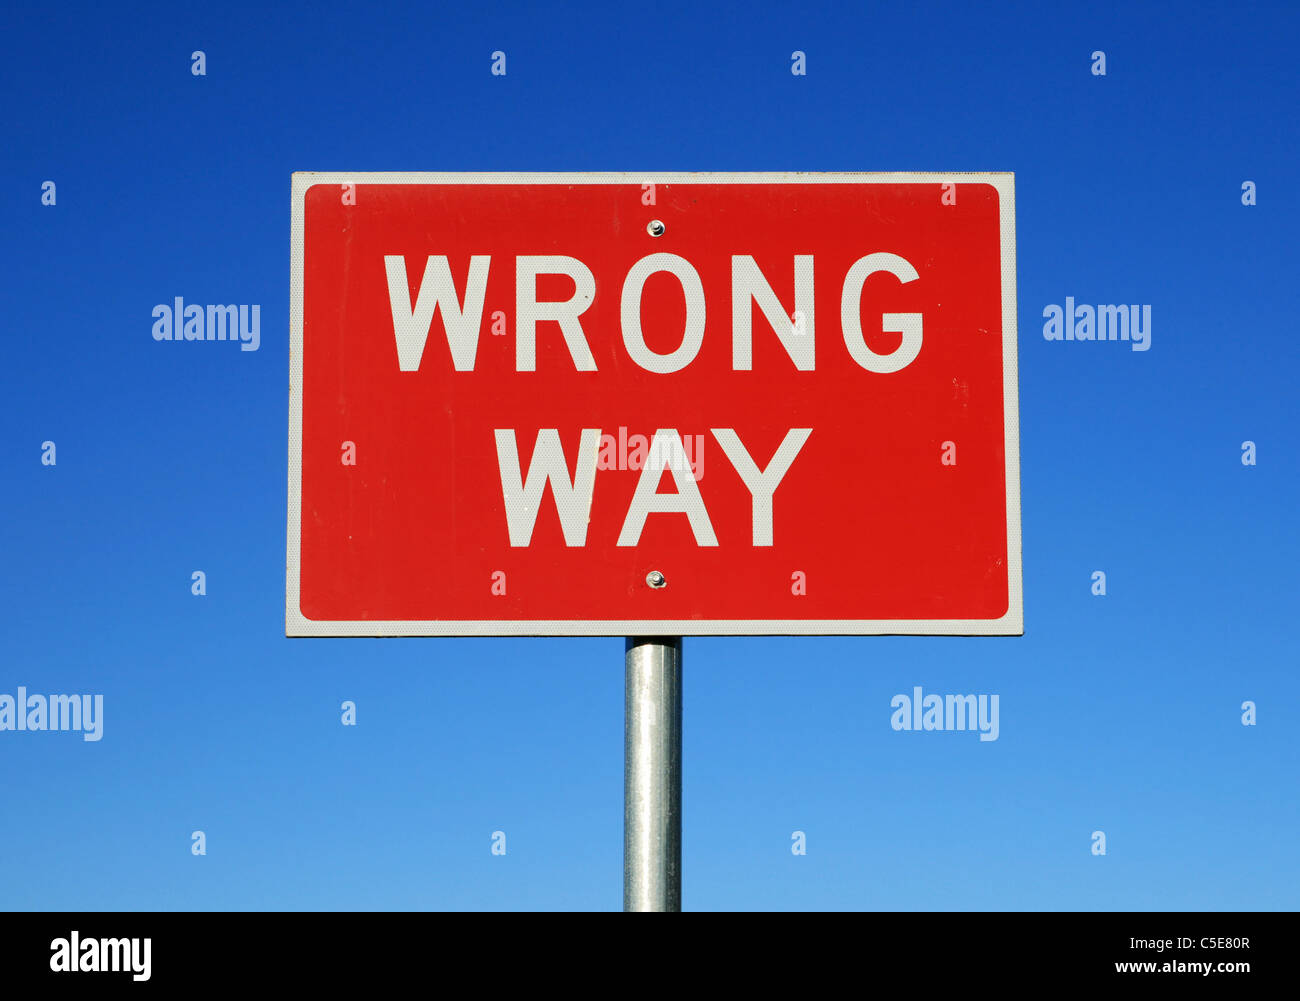 wrong way road sign on a blue sky background - Stock Image